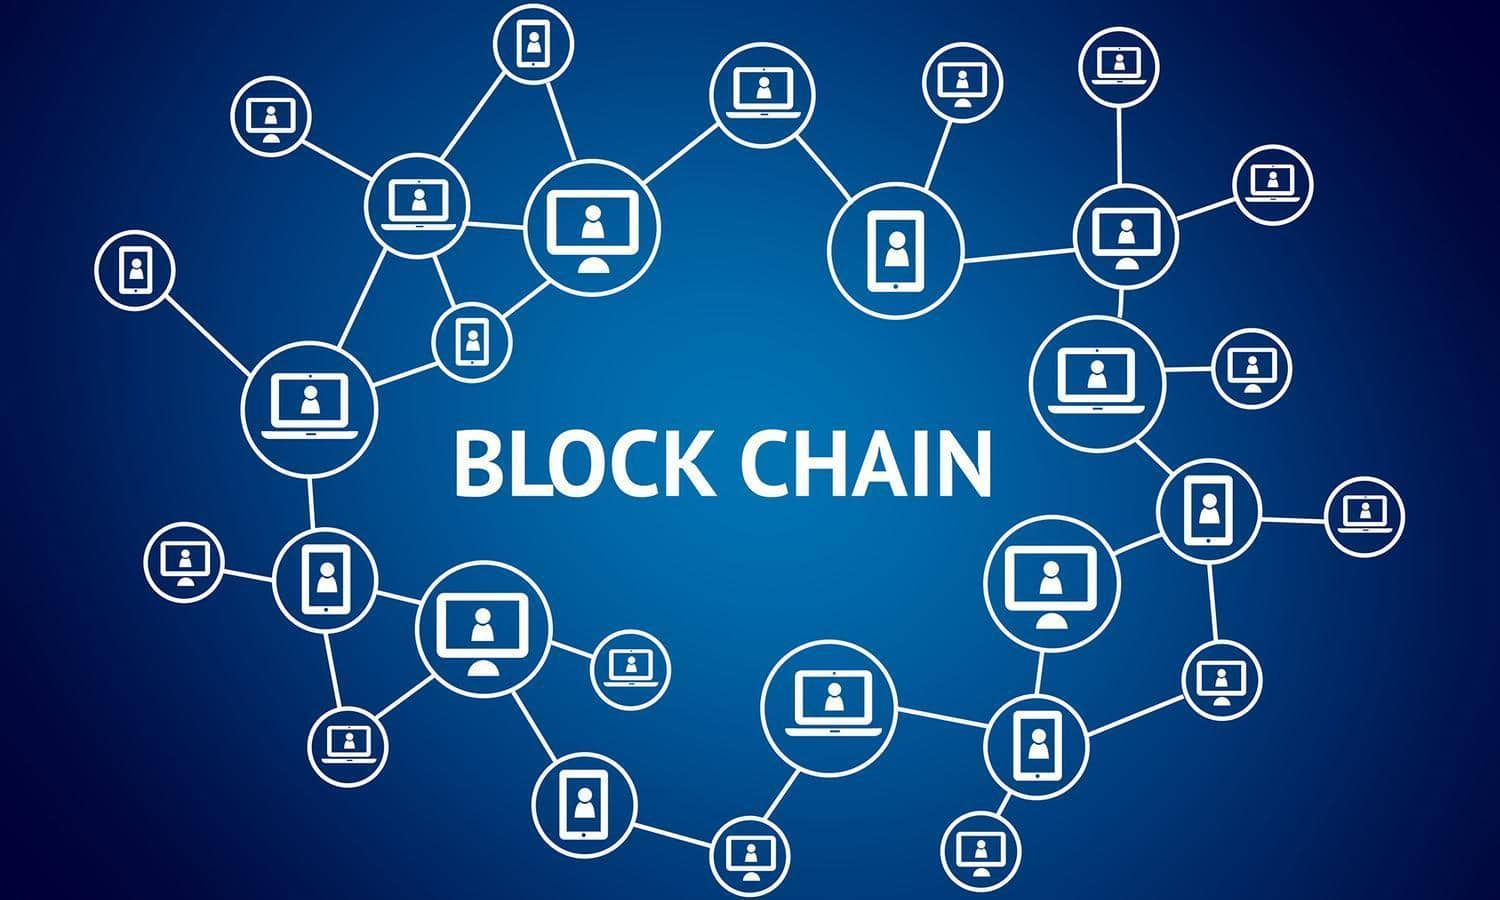 Block Chain Impact in 2018